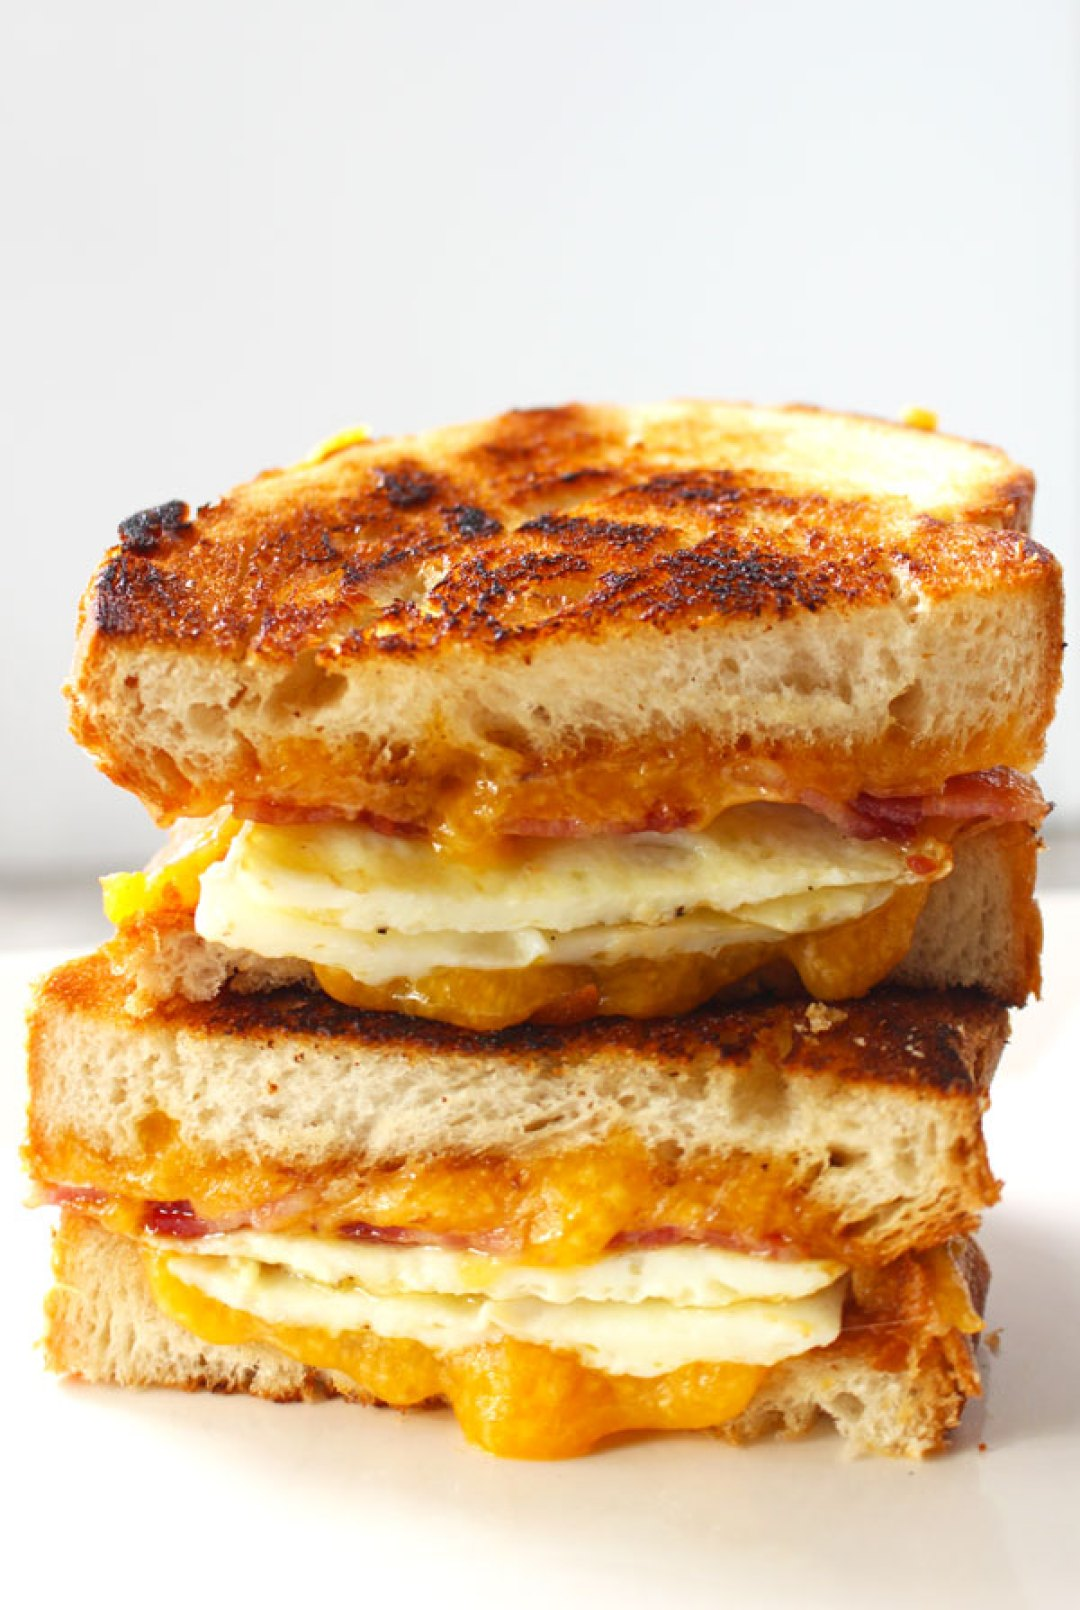 Bacon Egg Cheese Sandwich - This bacon egg cheese sandwich is so tasty, but the star of the show here is the Batard bread. | butterandthings.com